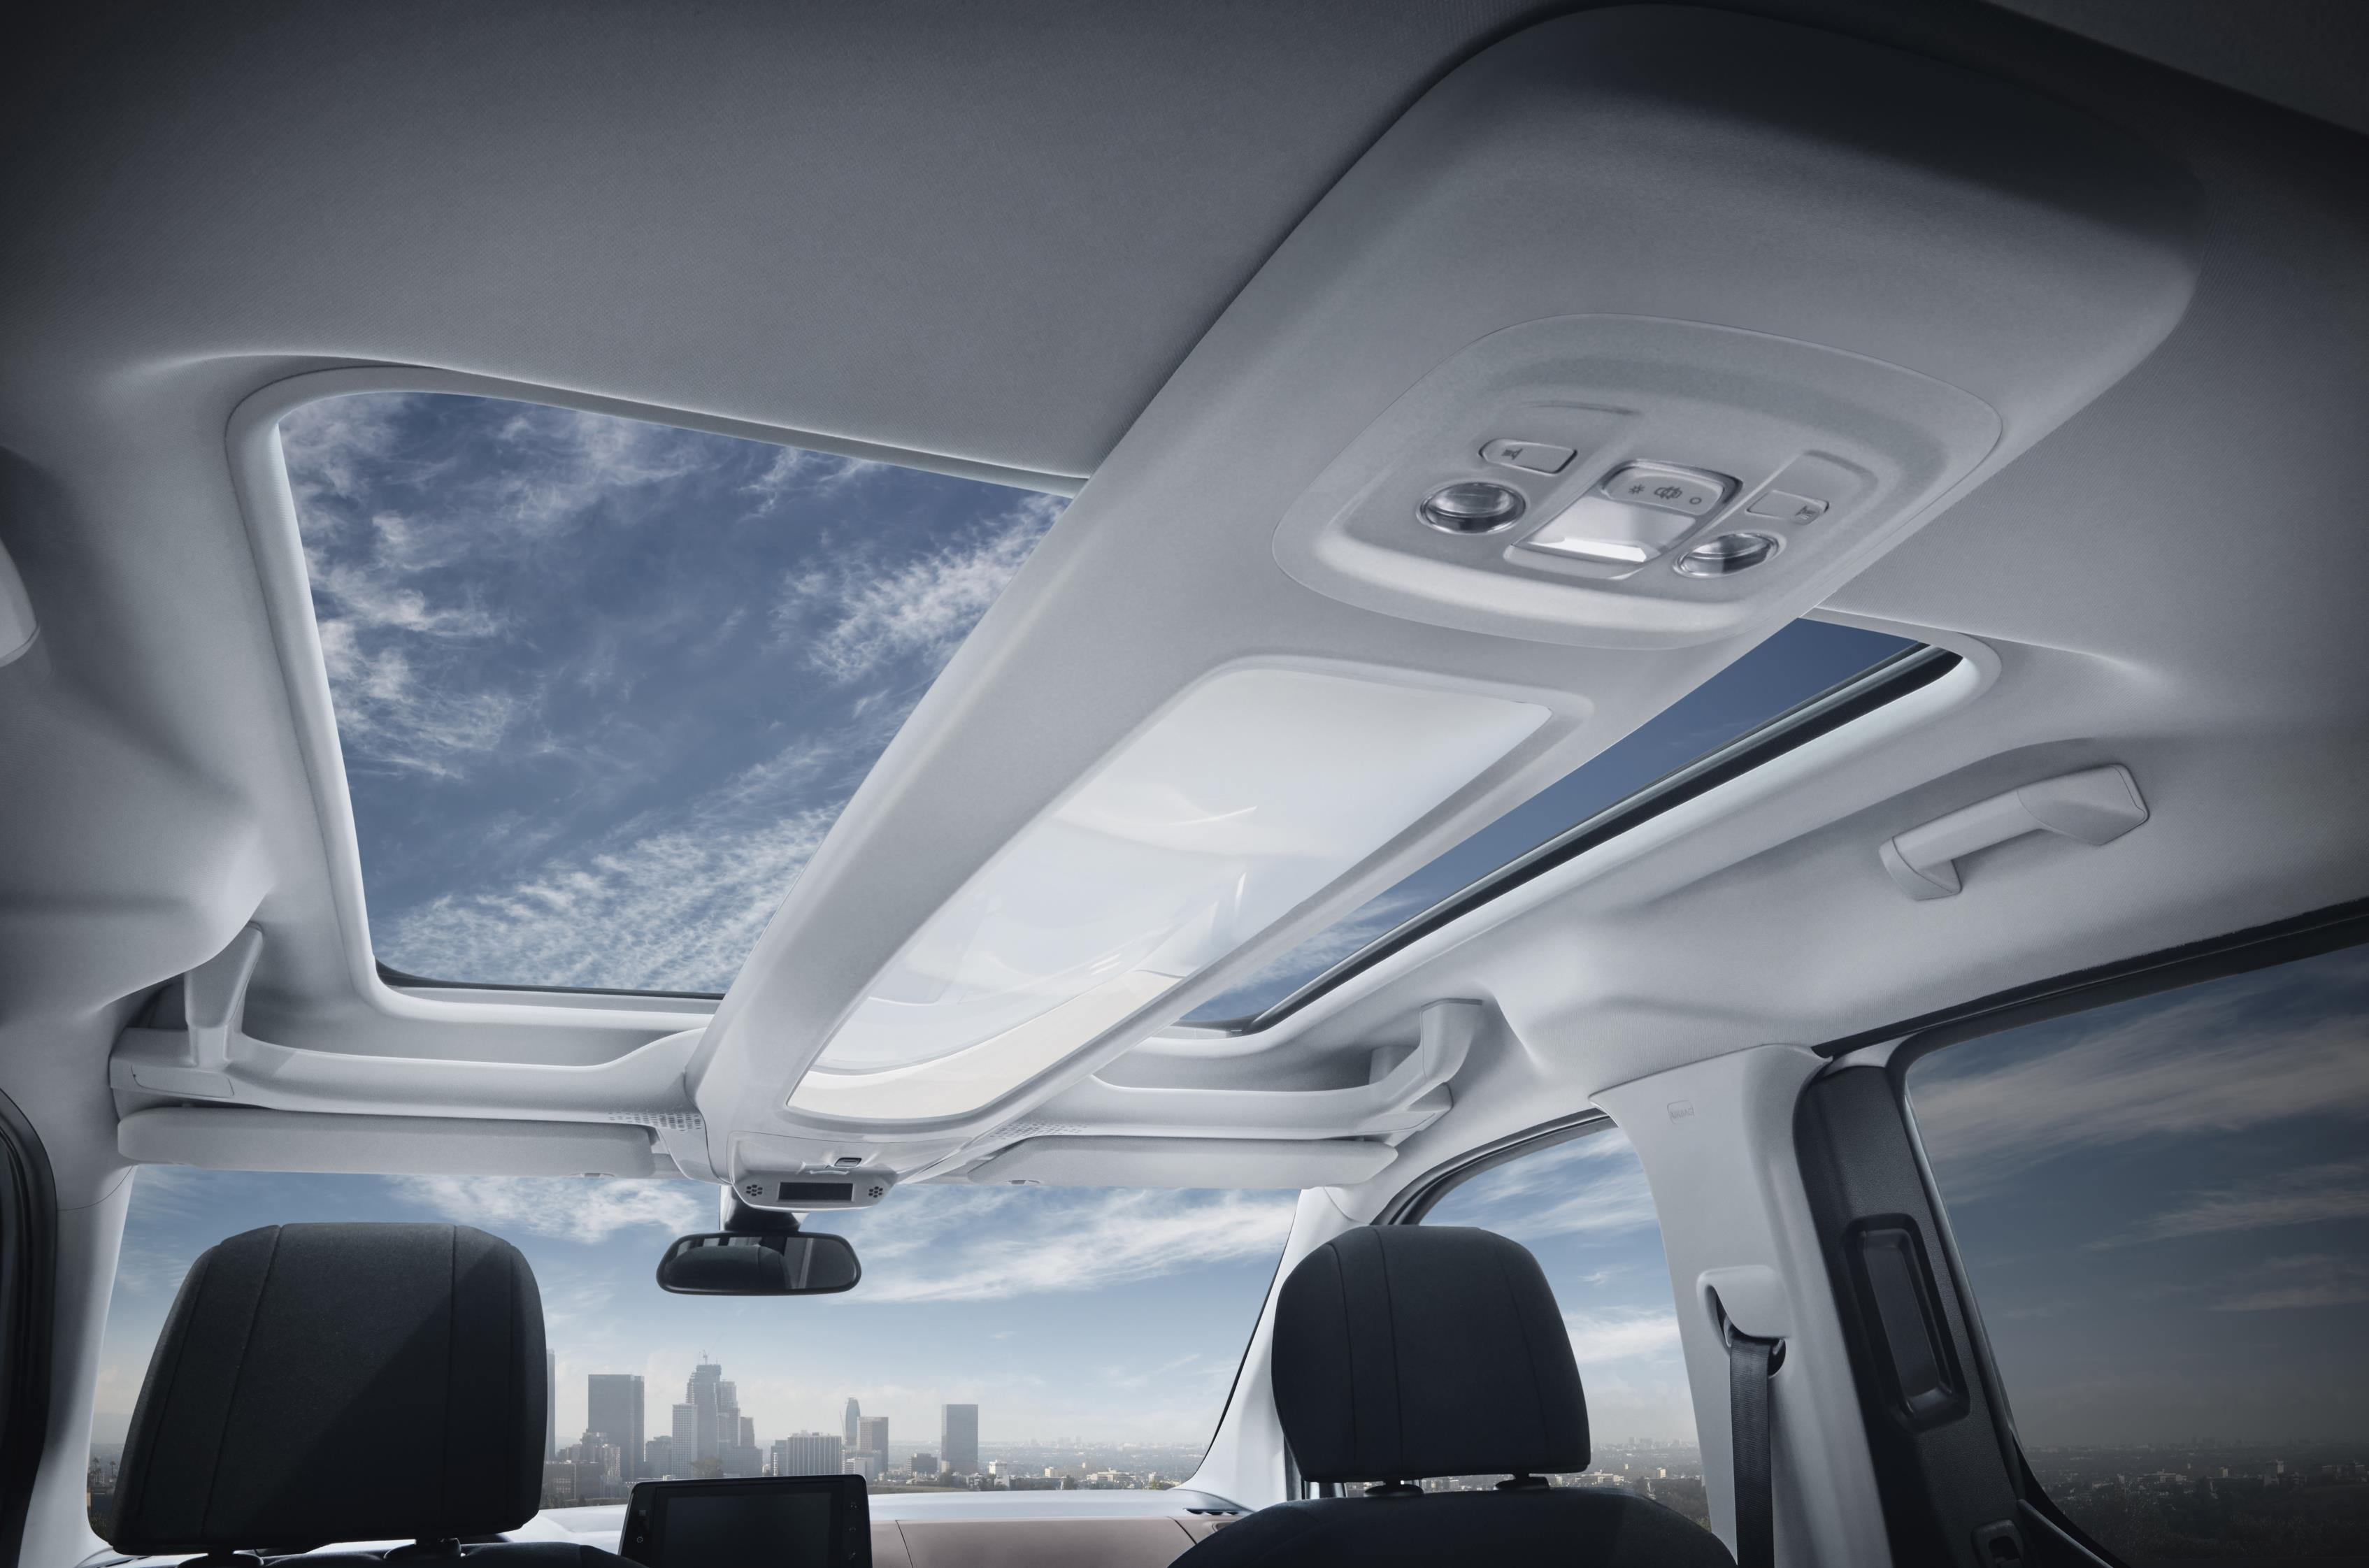 Interior of Peugeot Rifter with amazing view through the sunroof